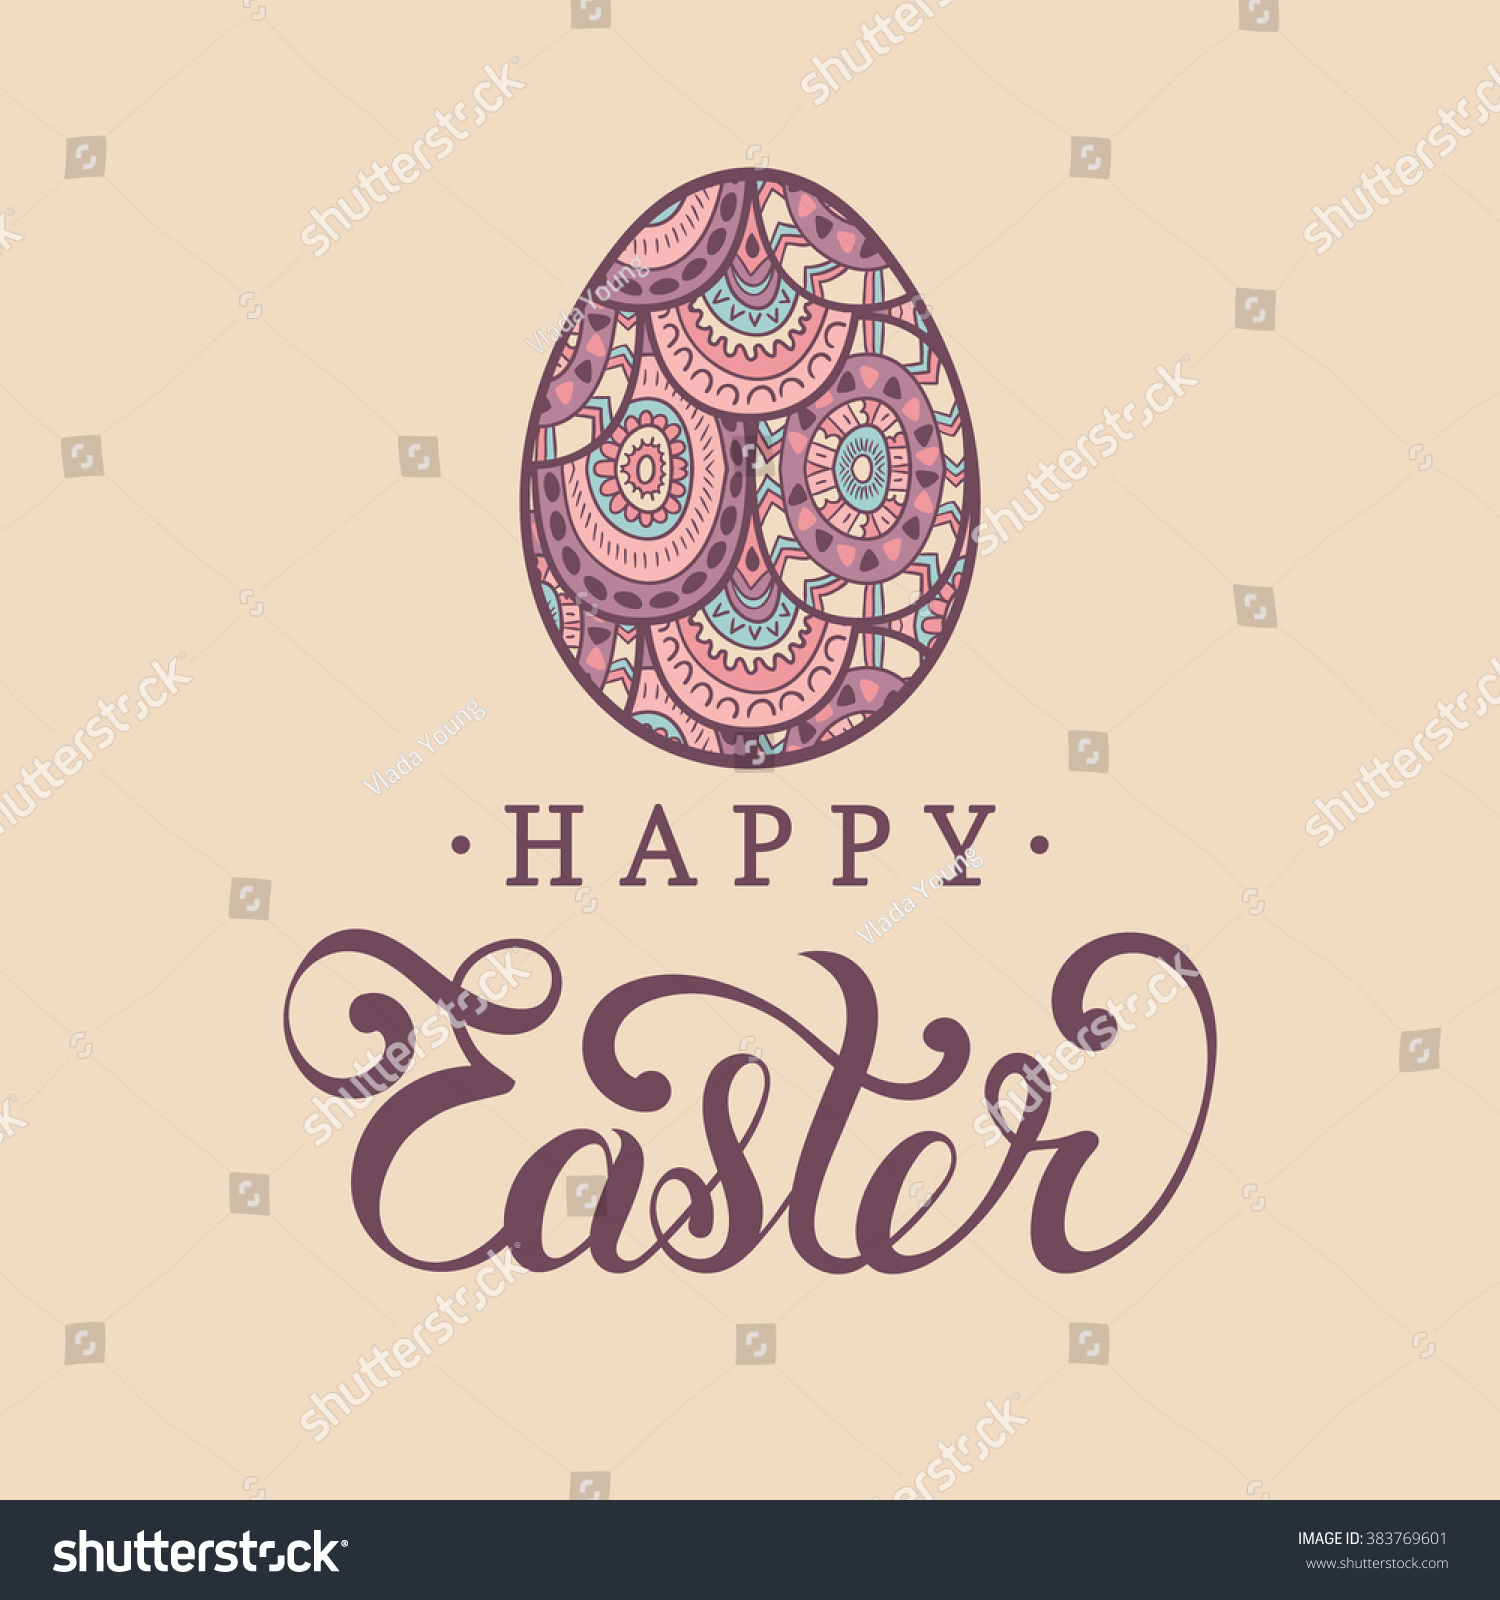 Happy Easter Greeting Card Egg Religious Stock Vector Royalty Free